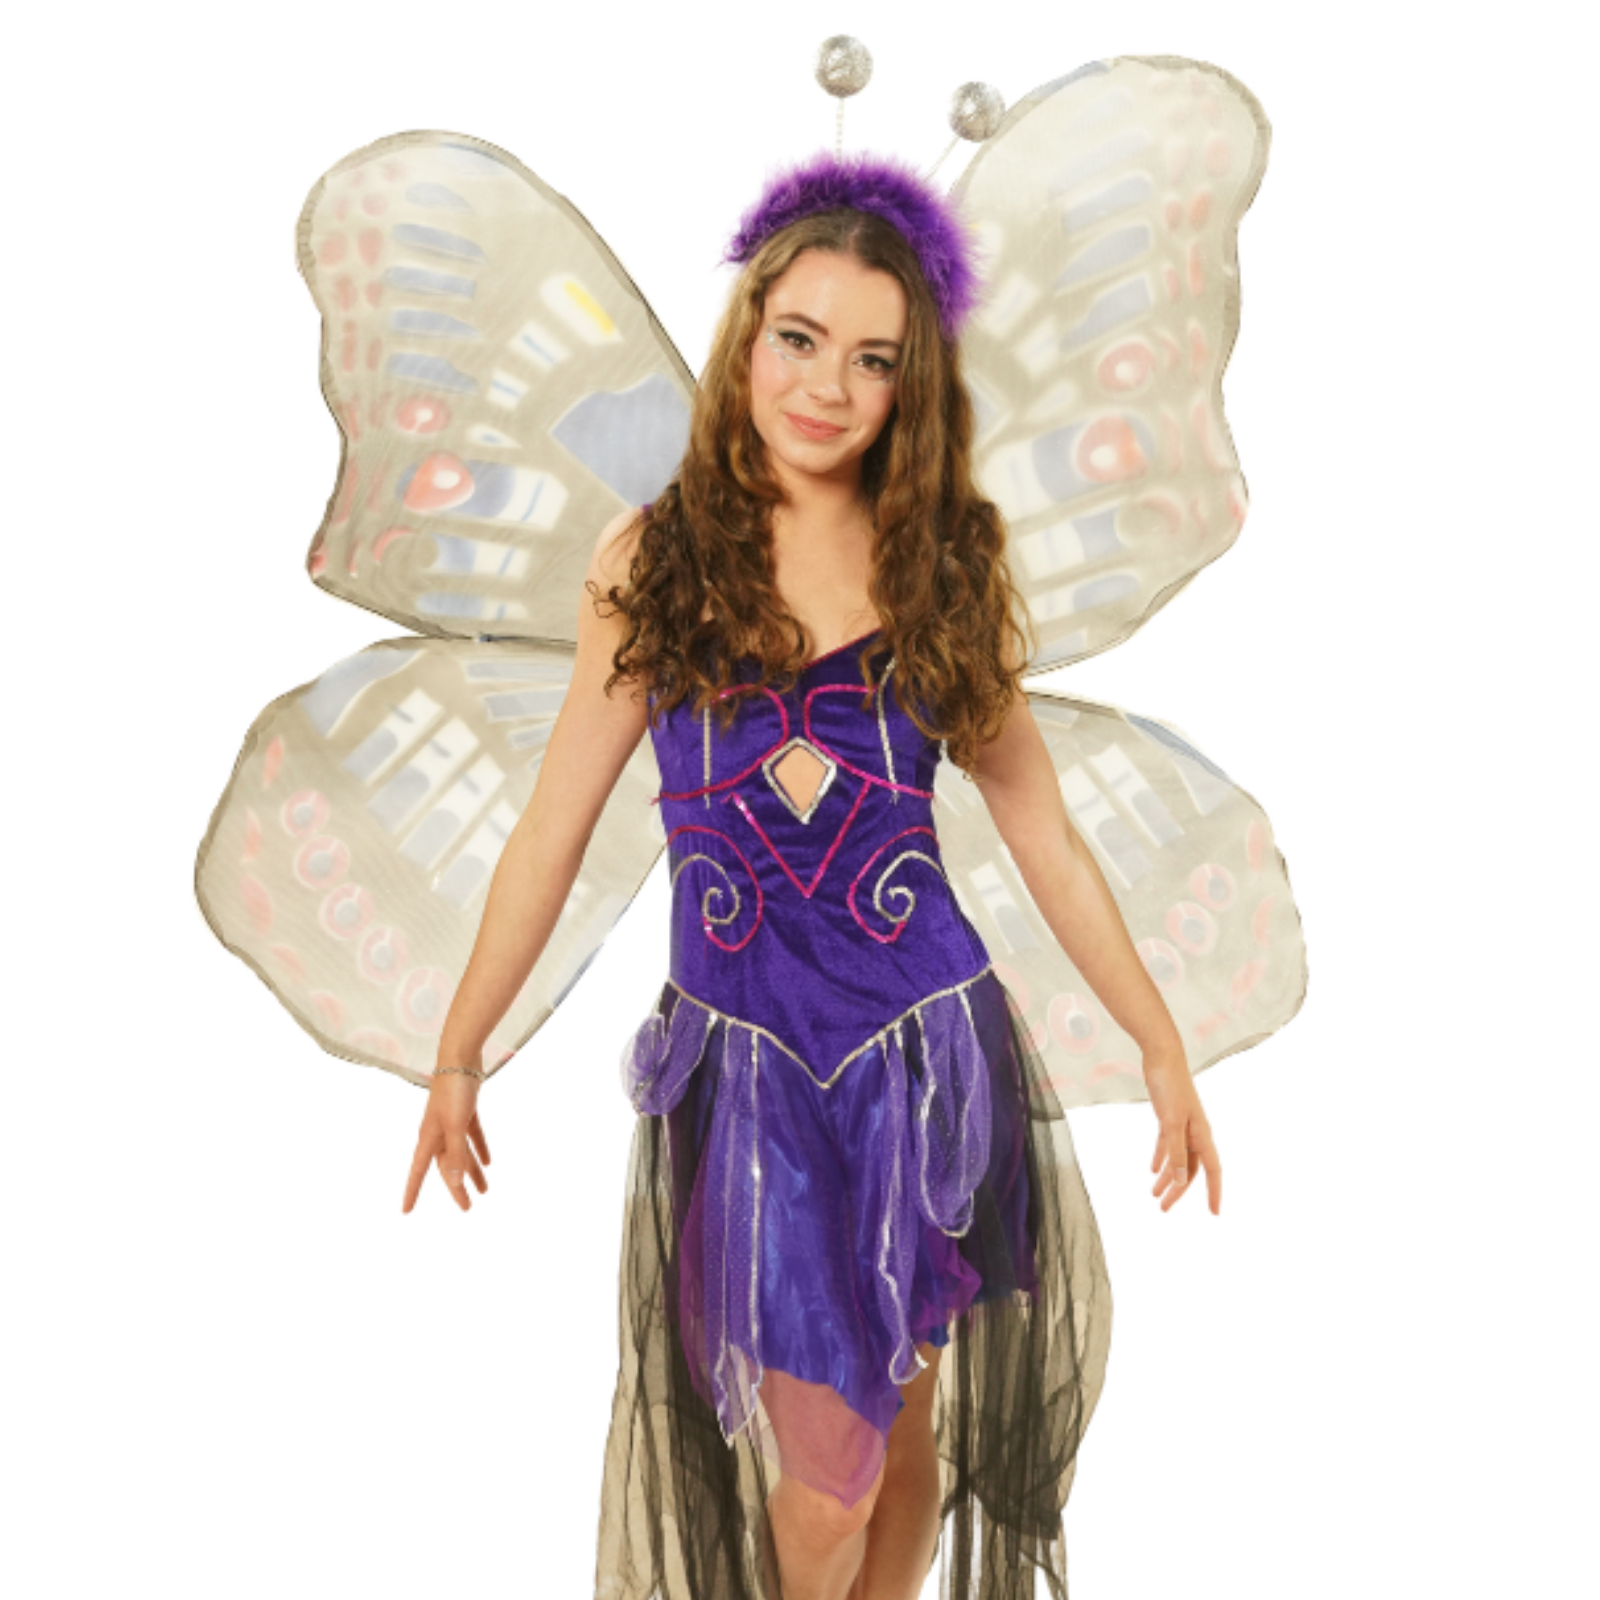 Butterfly Party EntertainerImage